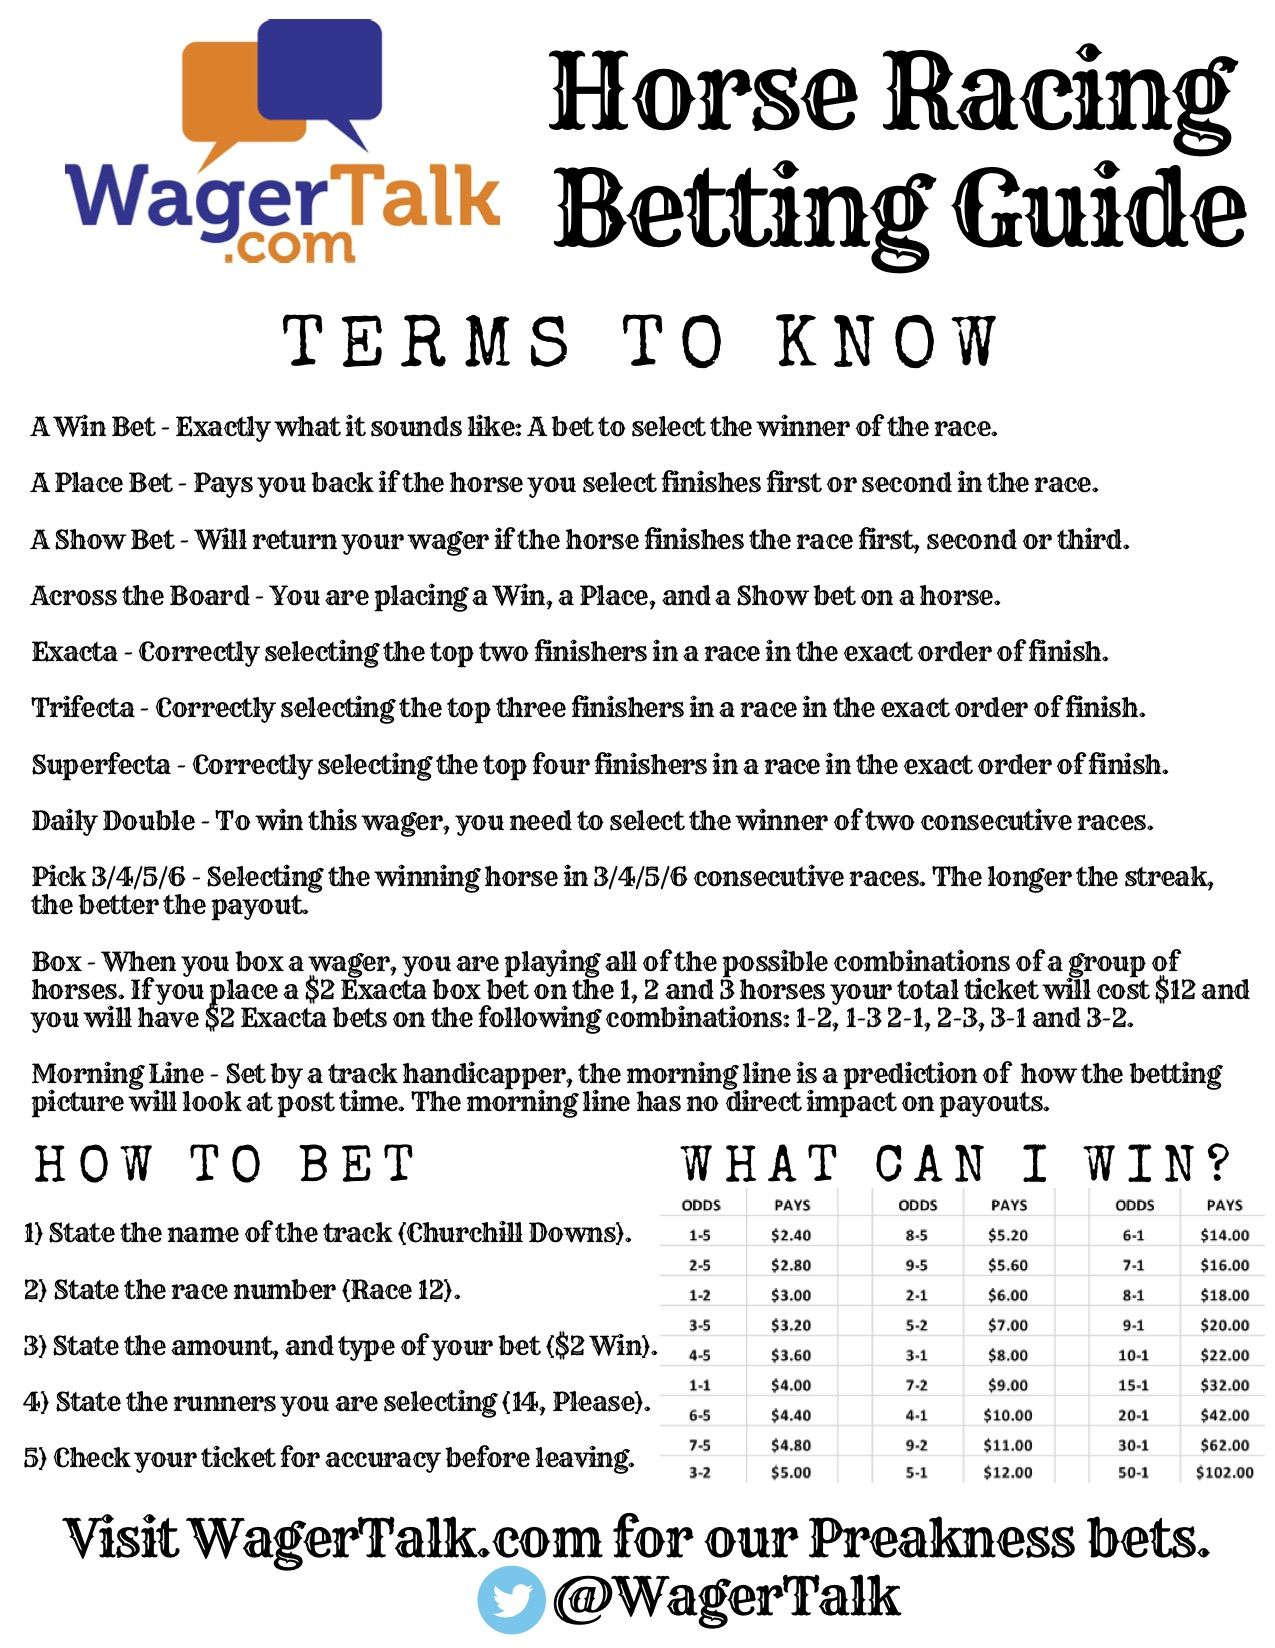 Guide to horse racing betting rules betting odds explained football jerseys